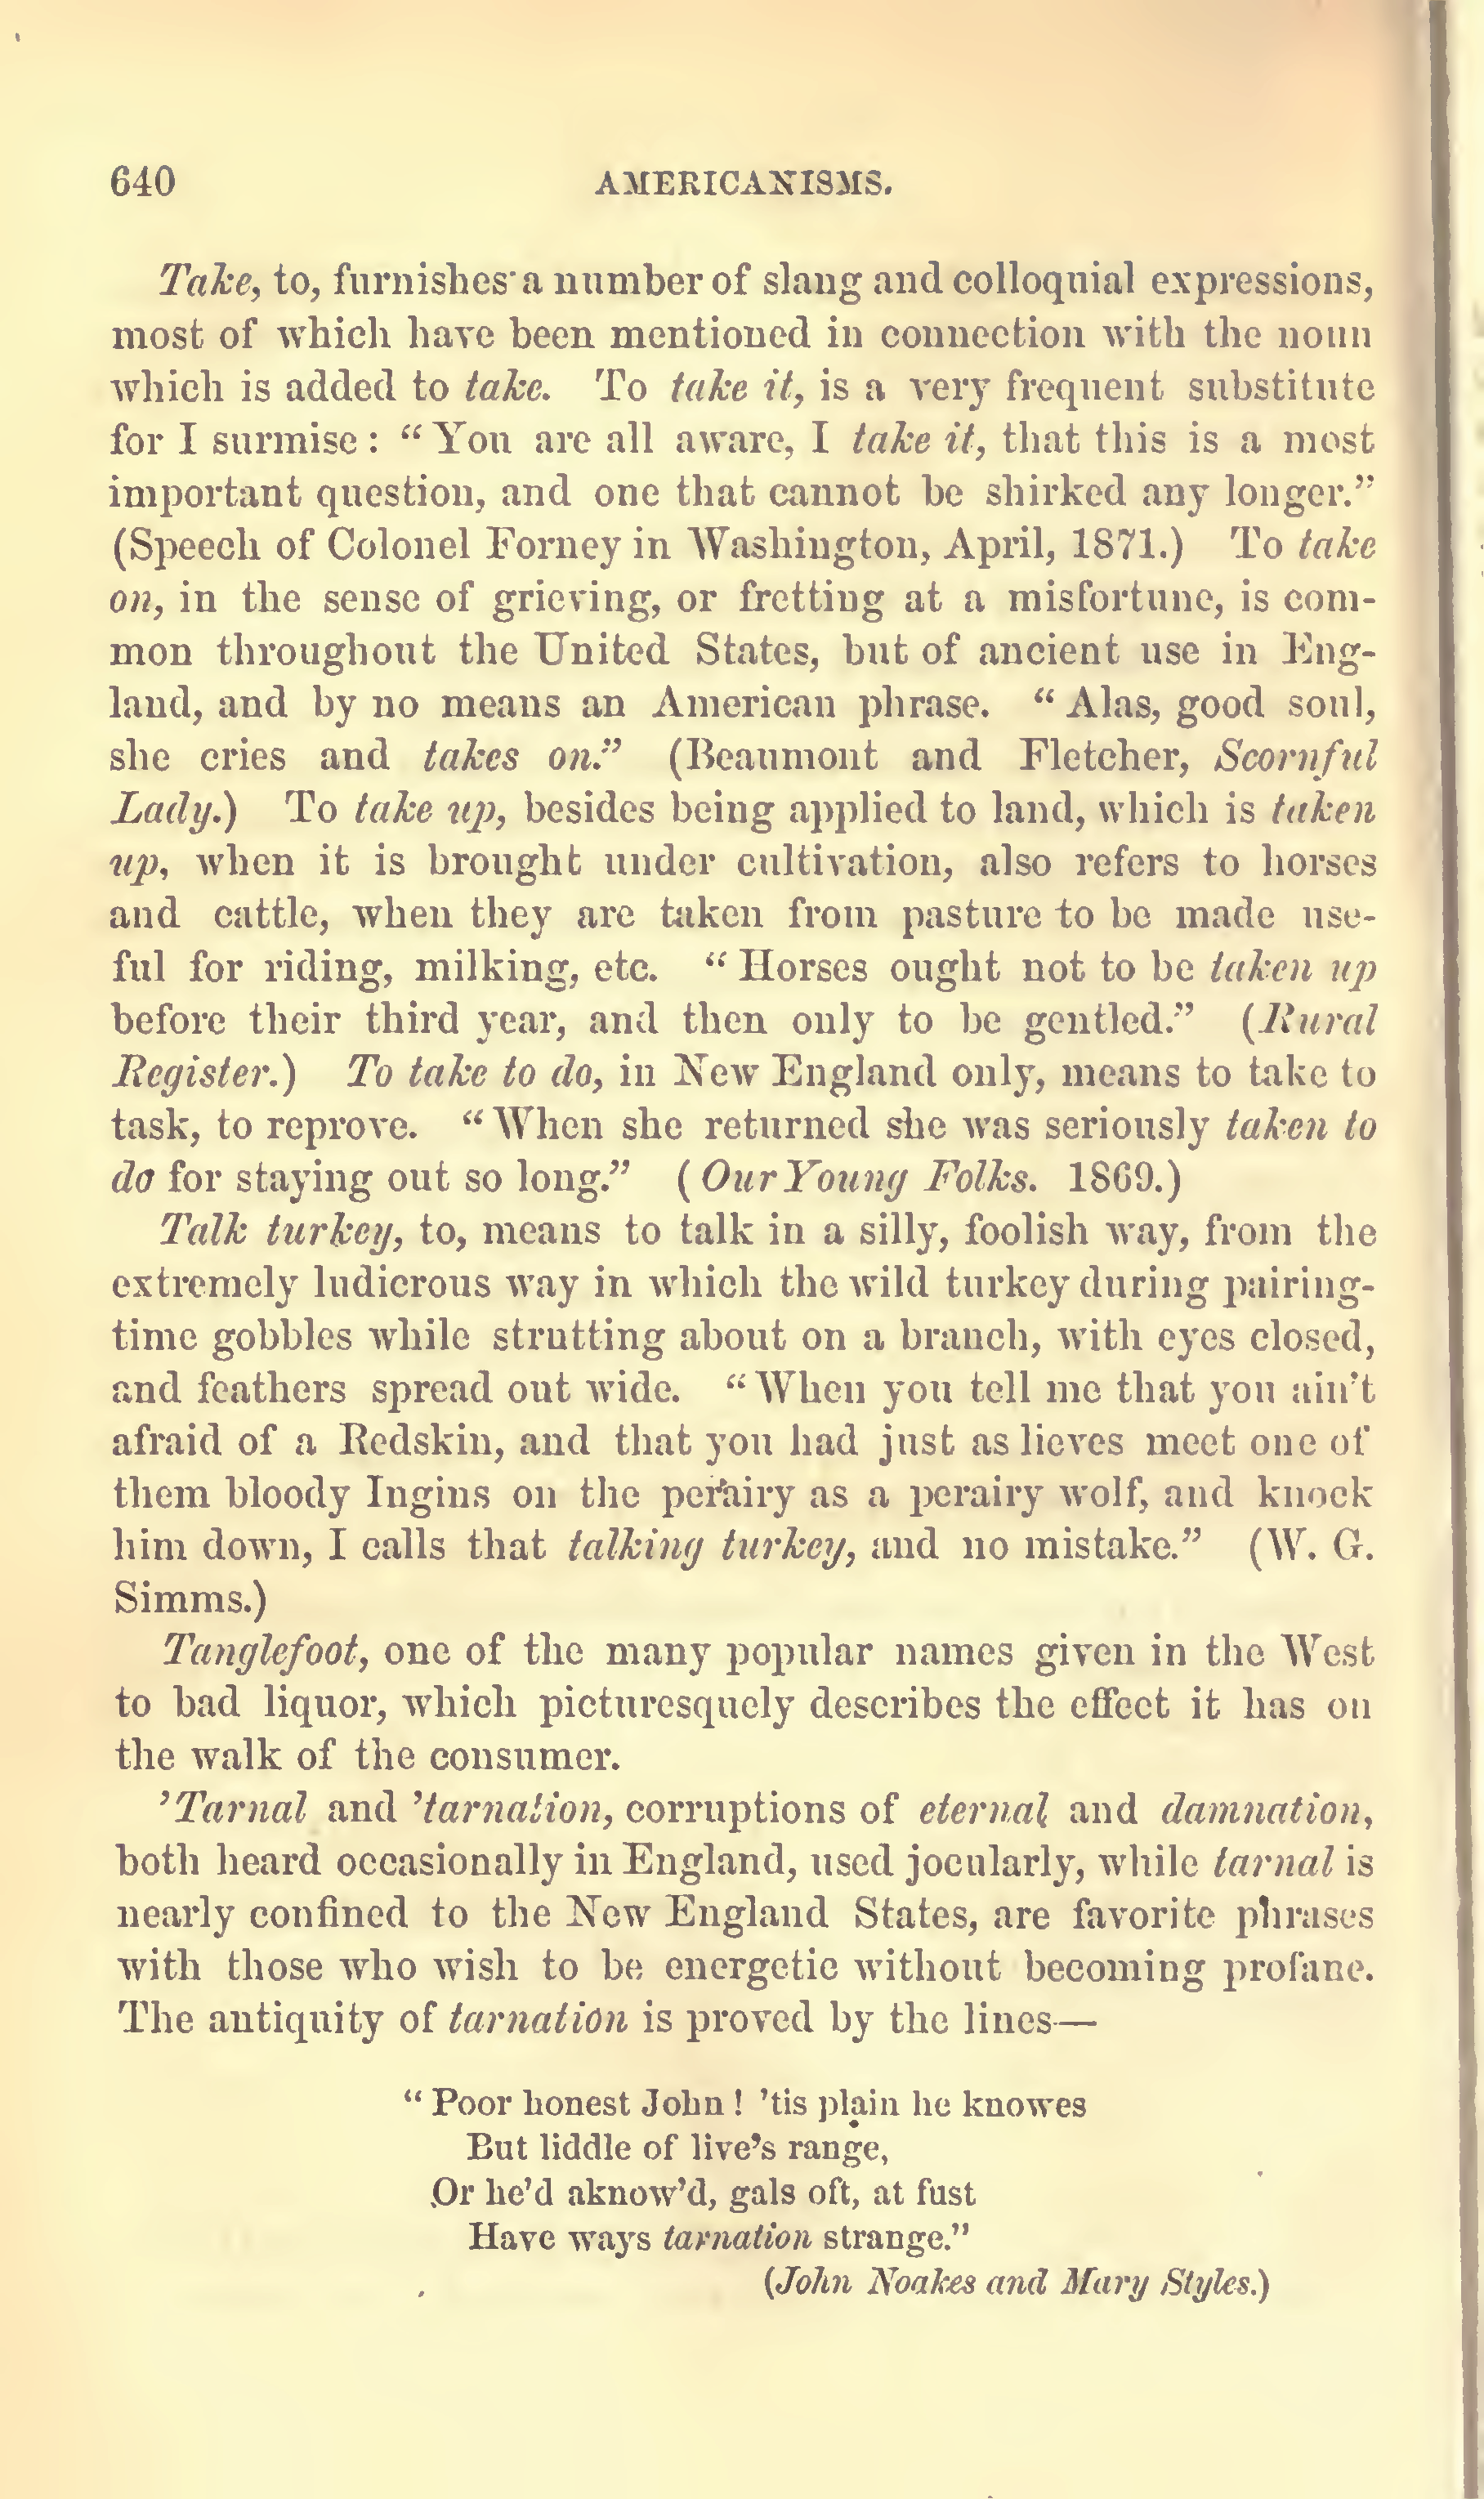 Page640 Americanisms the English of the New world by Maximilian Schele de Vere 1872